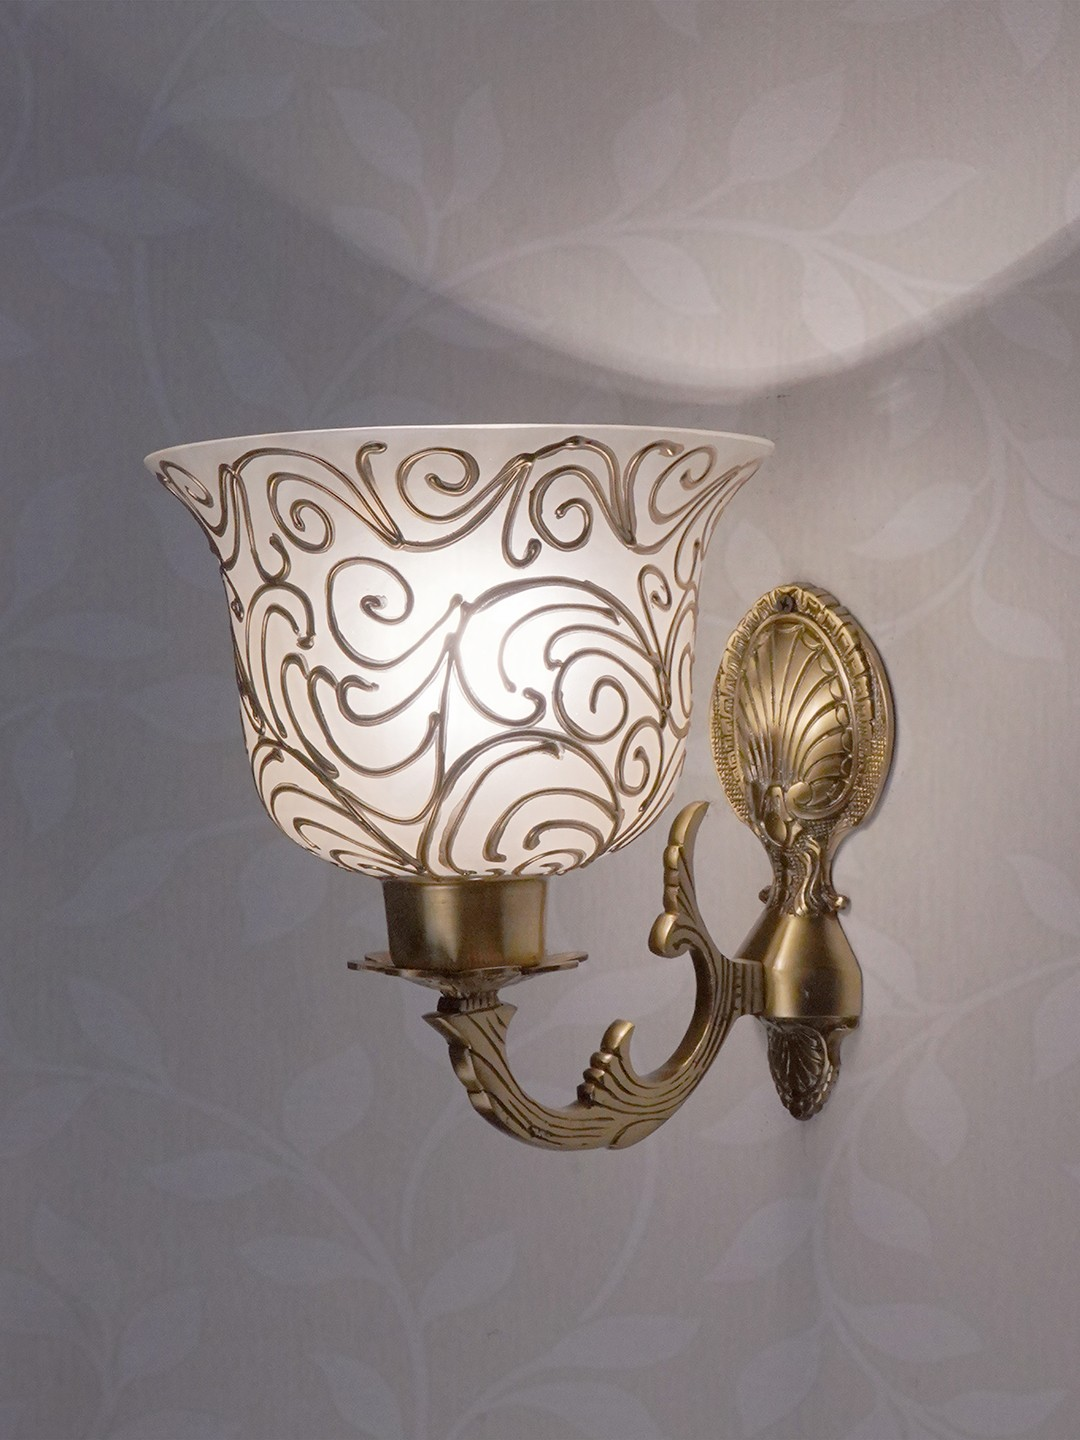 Traditional Antique Brass Wall Light with Frosted Glass Shades with Jaipuri designing on glass